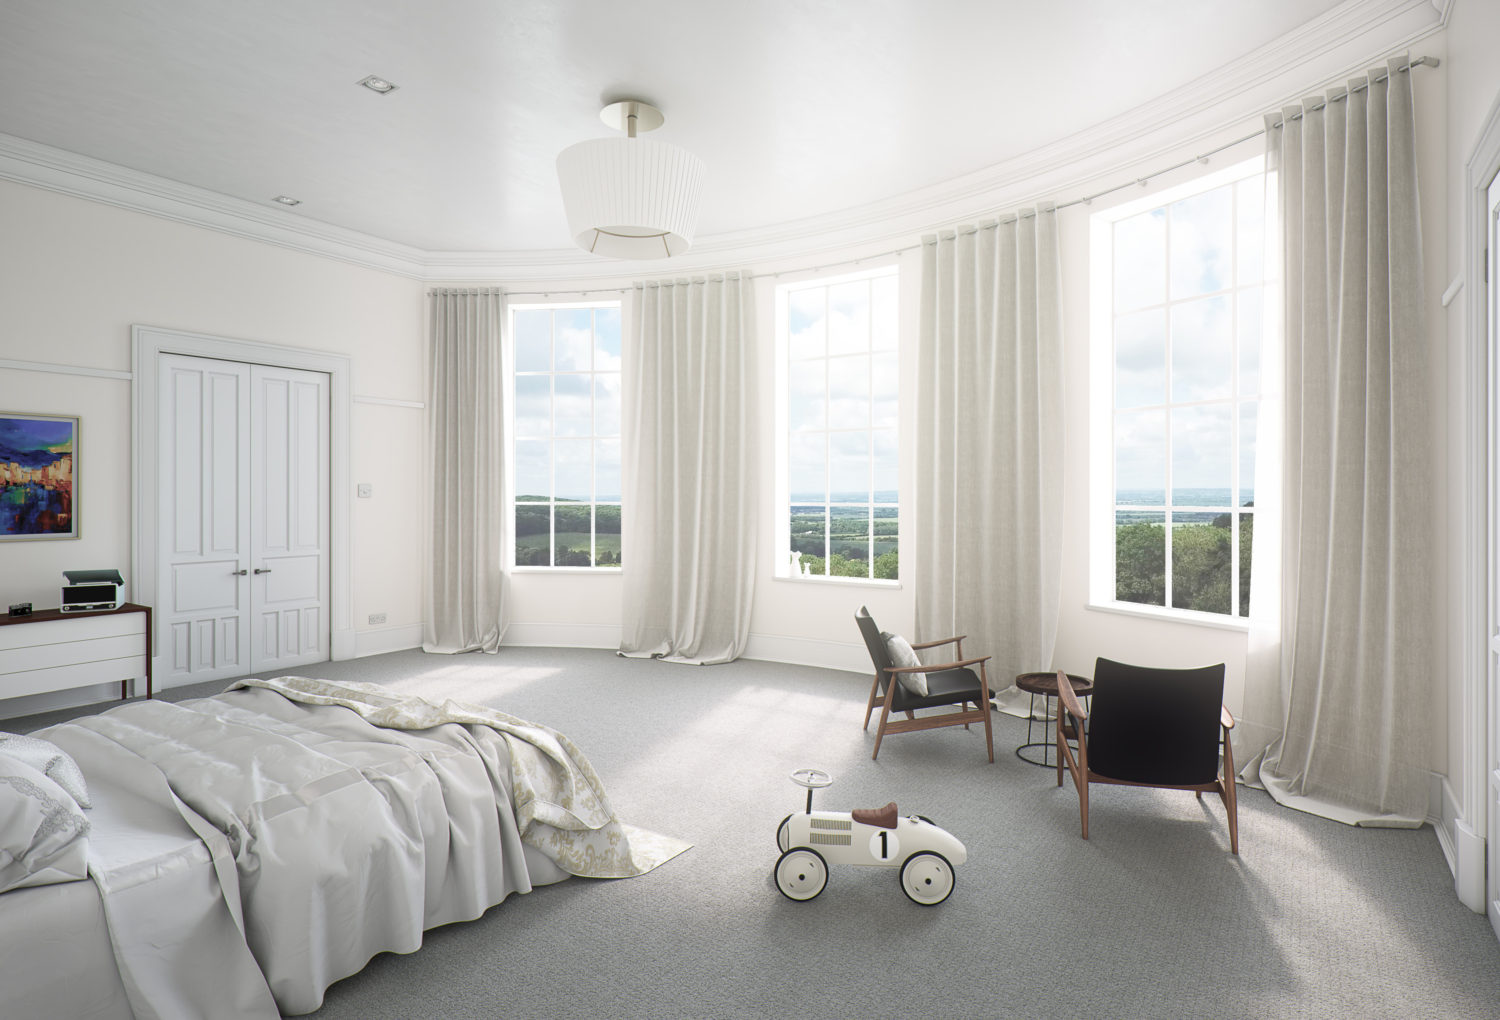 CGI image of a luxury residential bedroom with views across a valley